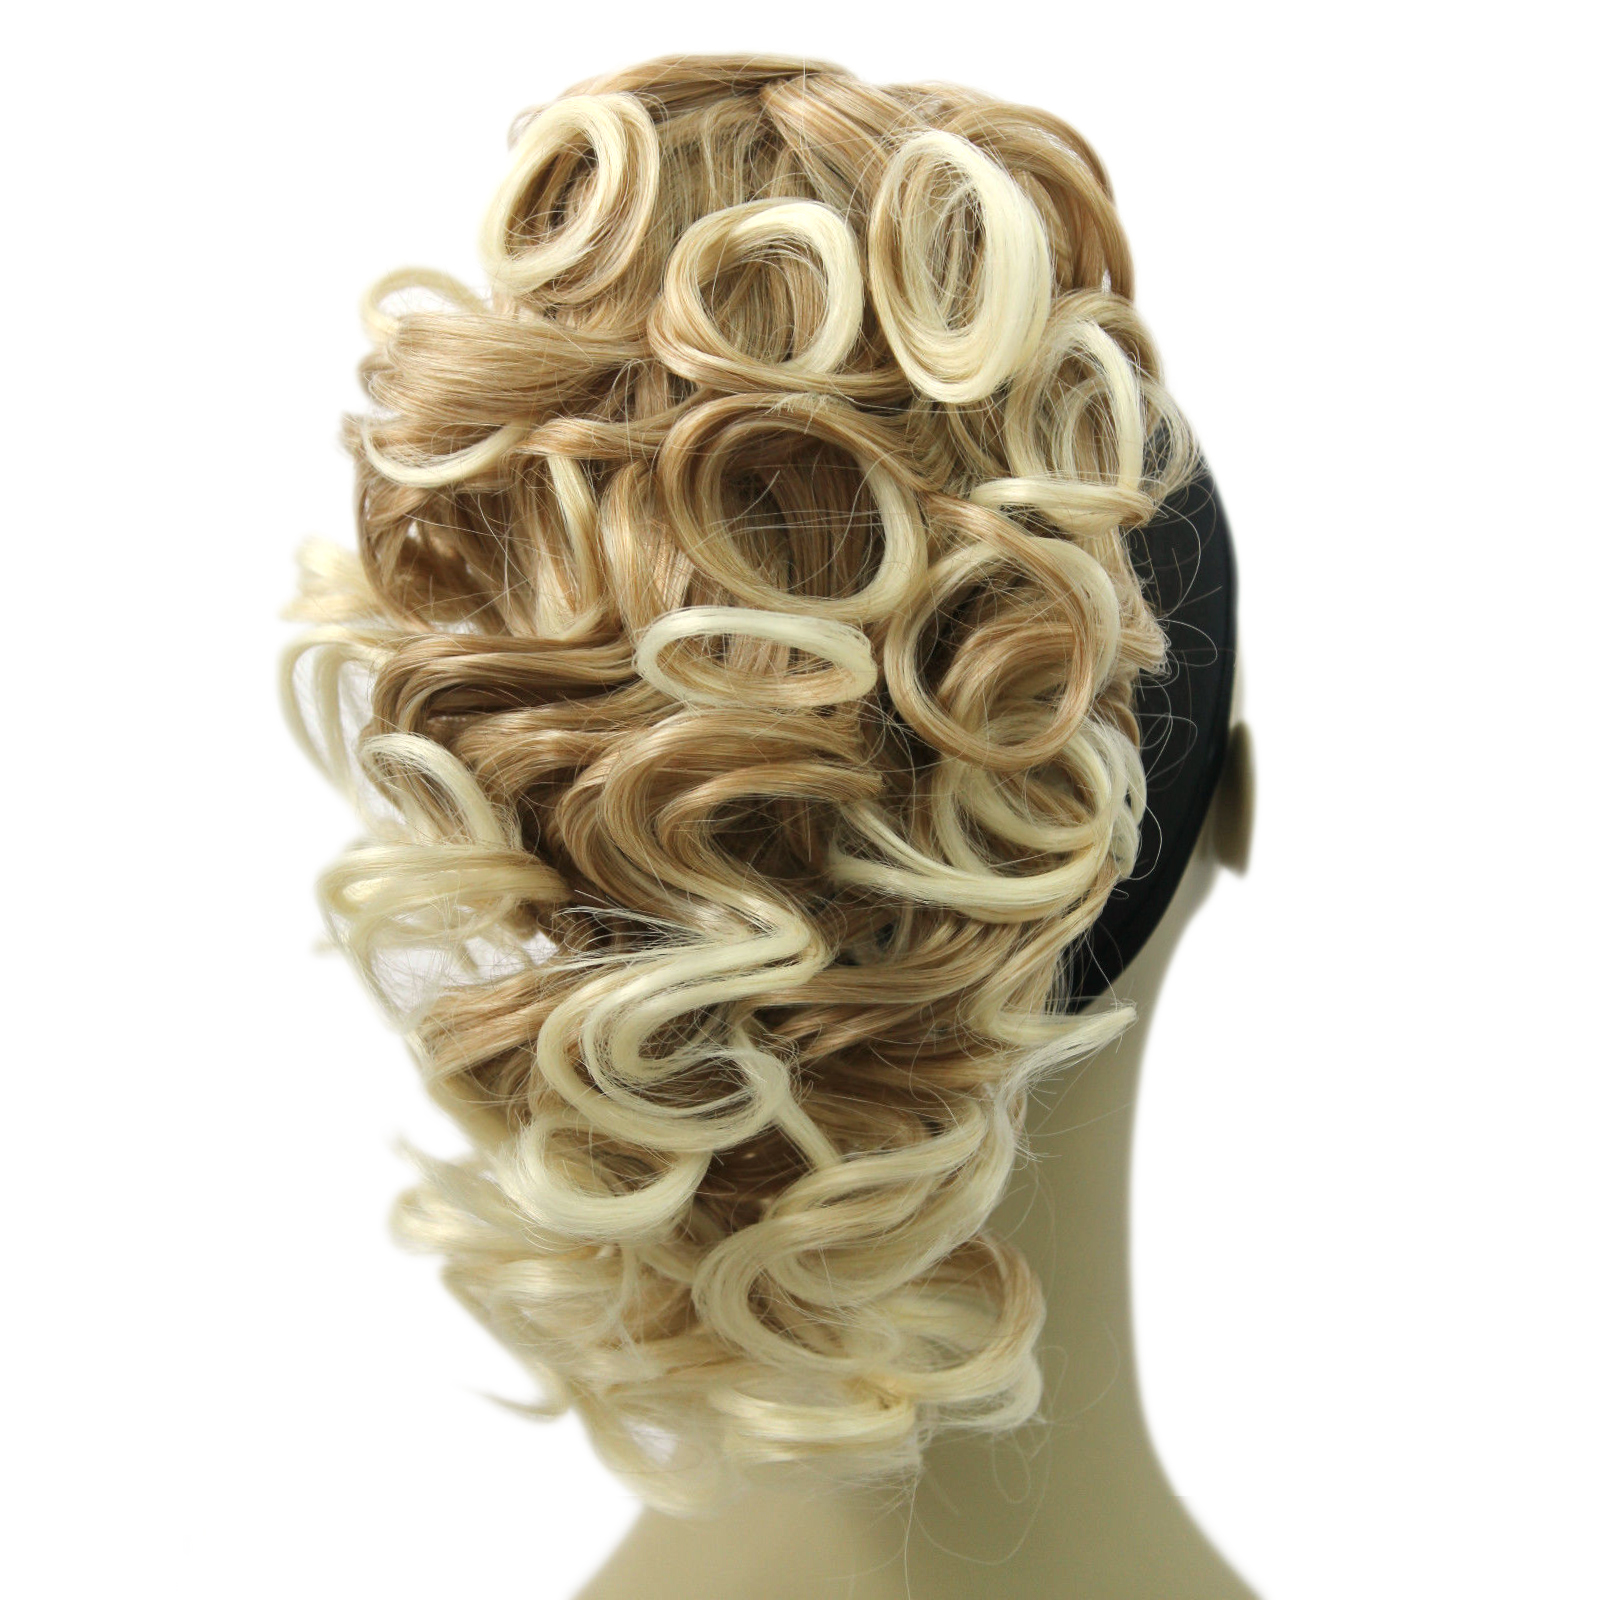 HTB1SPSUQVXXXXcDXXXXq6xXFXXXL - Soowee 8 Color Curly High Temperature Fiber Synthetic Hair Pony Tail Hairpiece Blonde Gray Clip In Hair Extensions Claw Ponytail